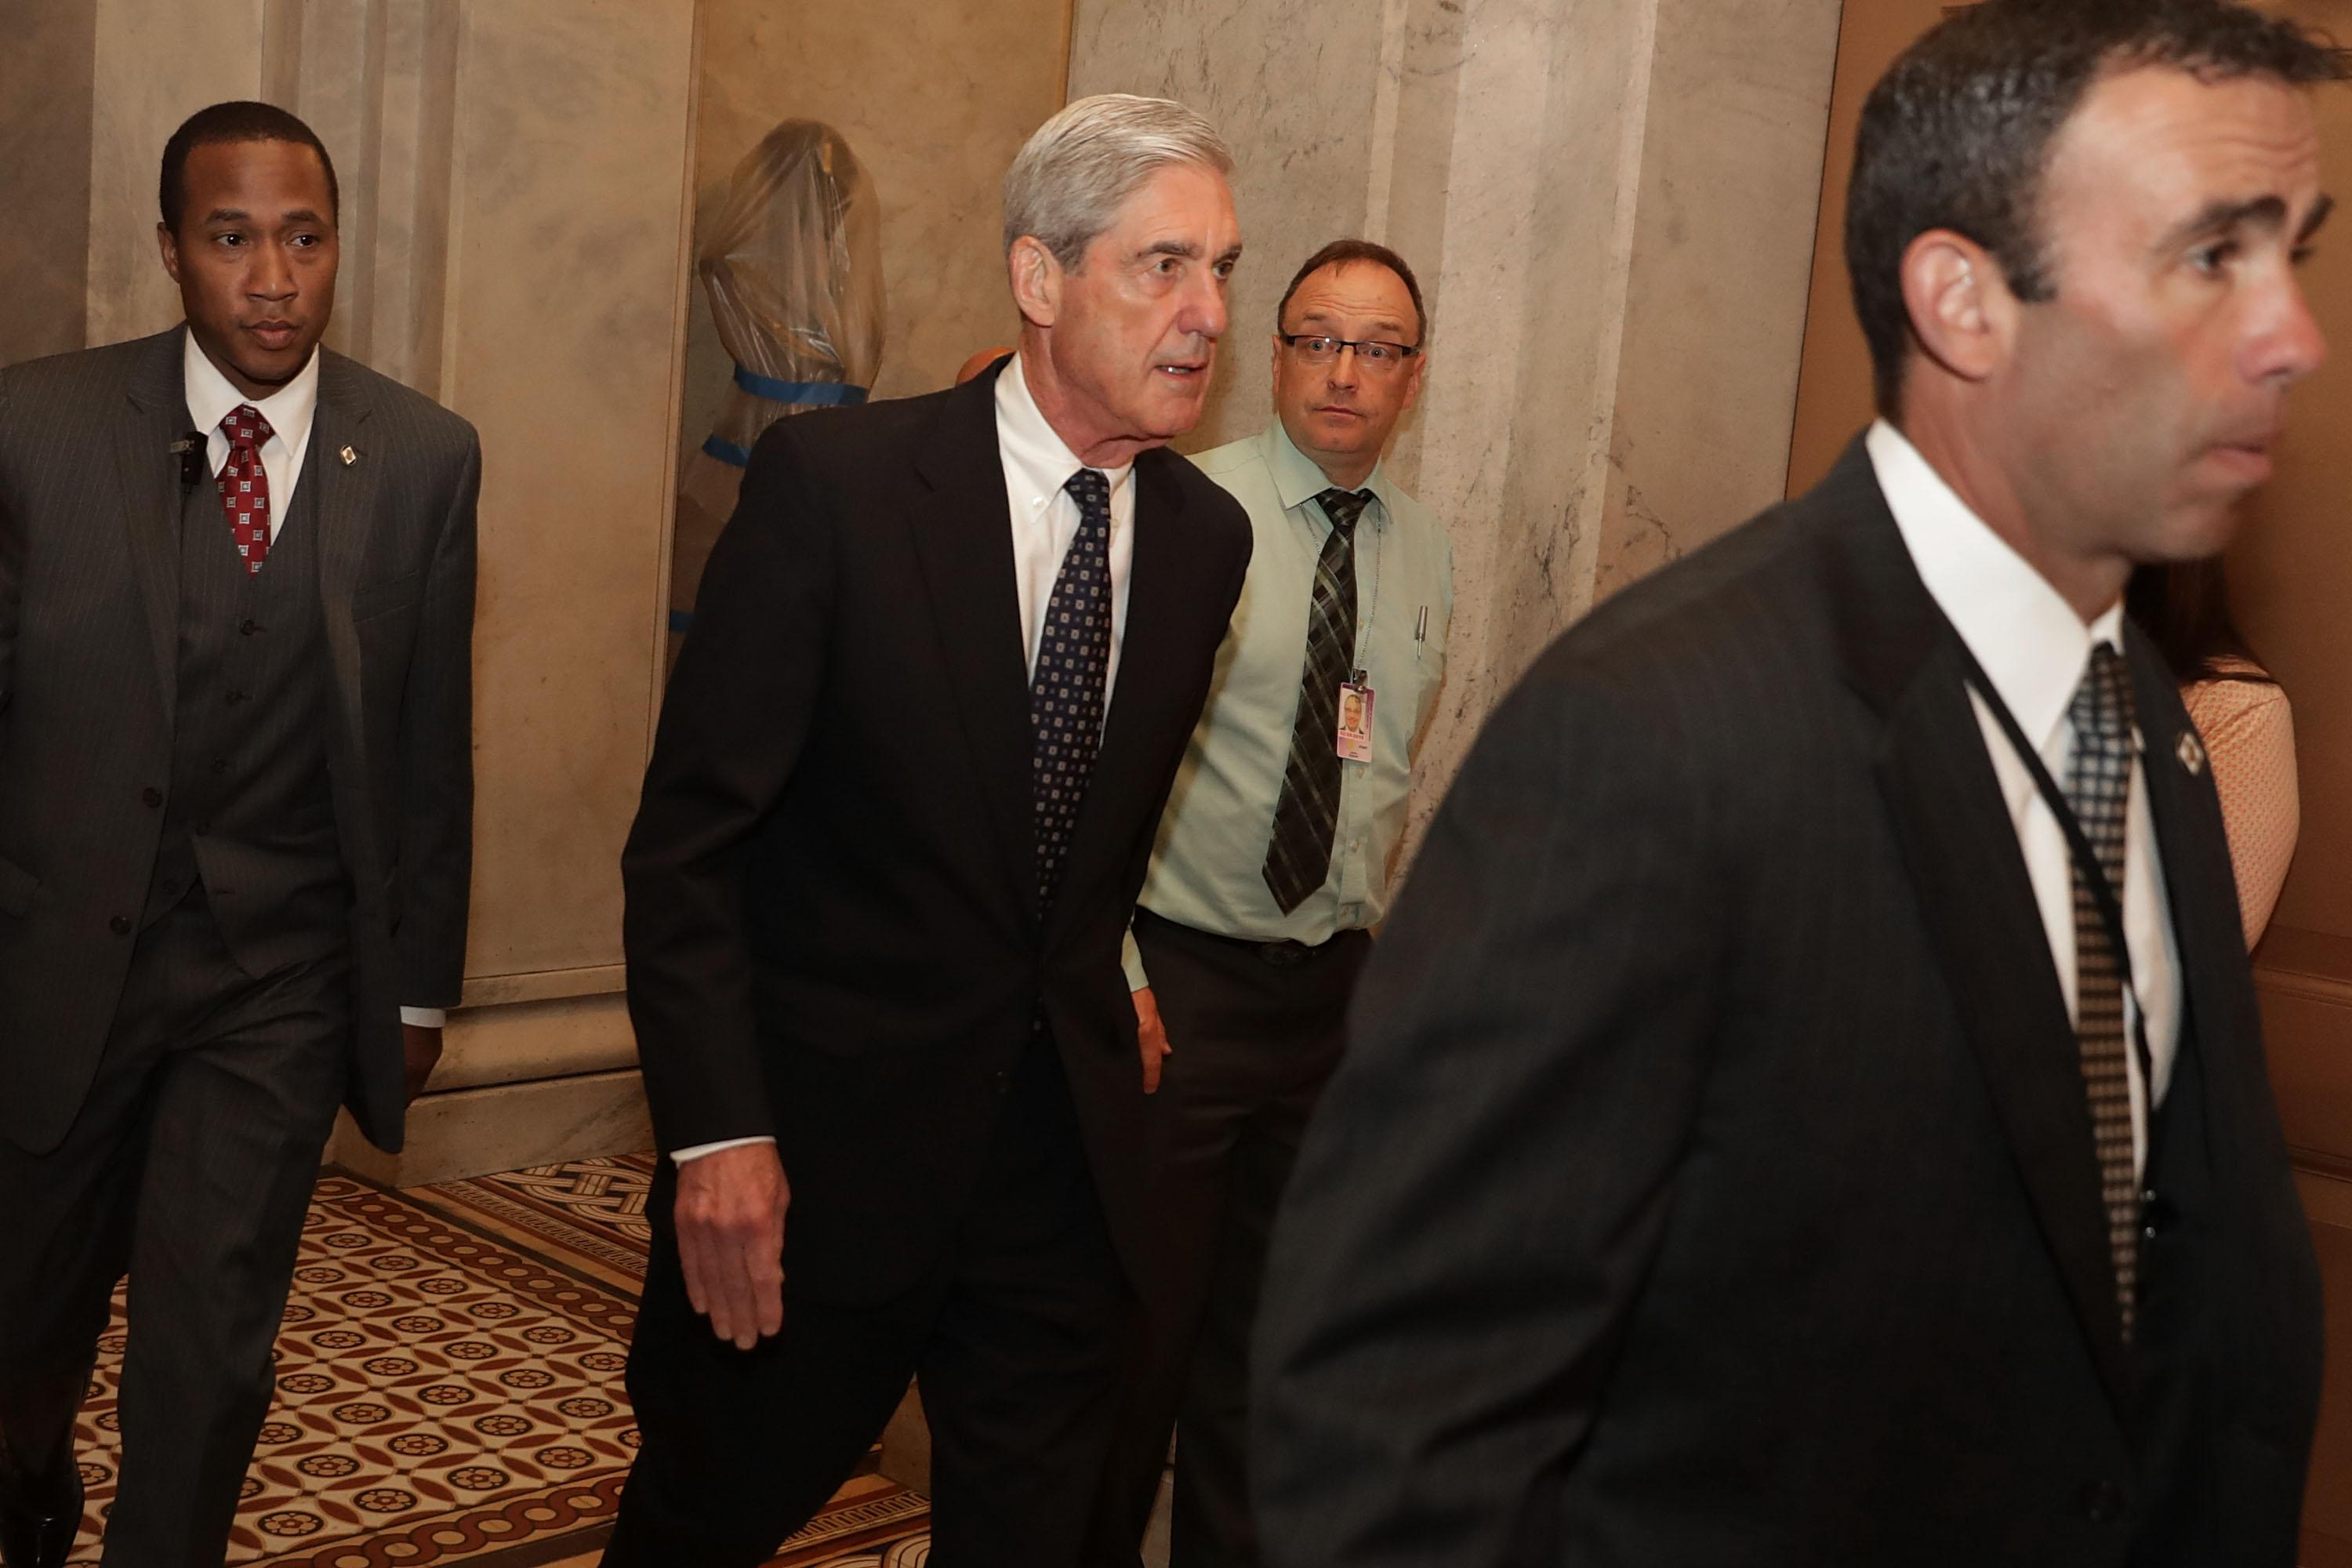 Former FBI Director Robert Mueller is surrounded by security and staff as he leaves a meeting with senators at the U.S. Capitol June 21, 2017 in Washington, DC.